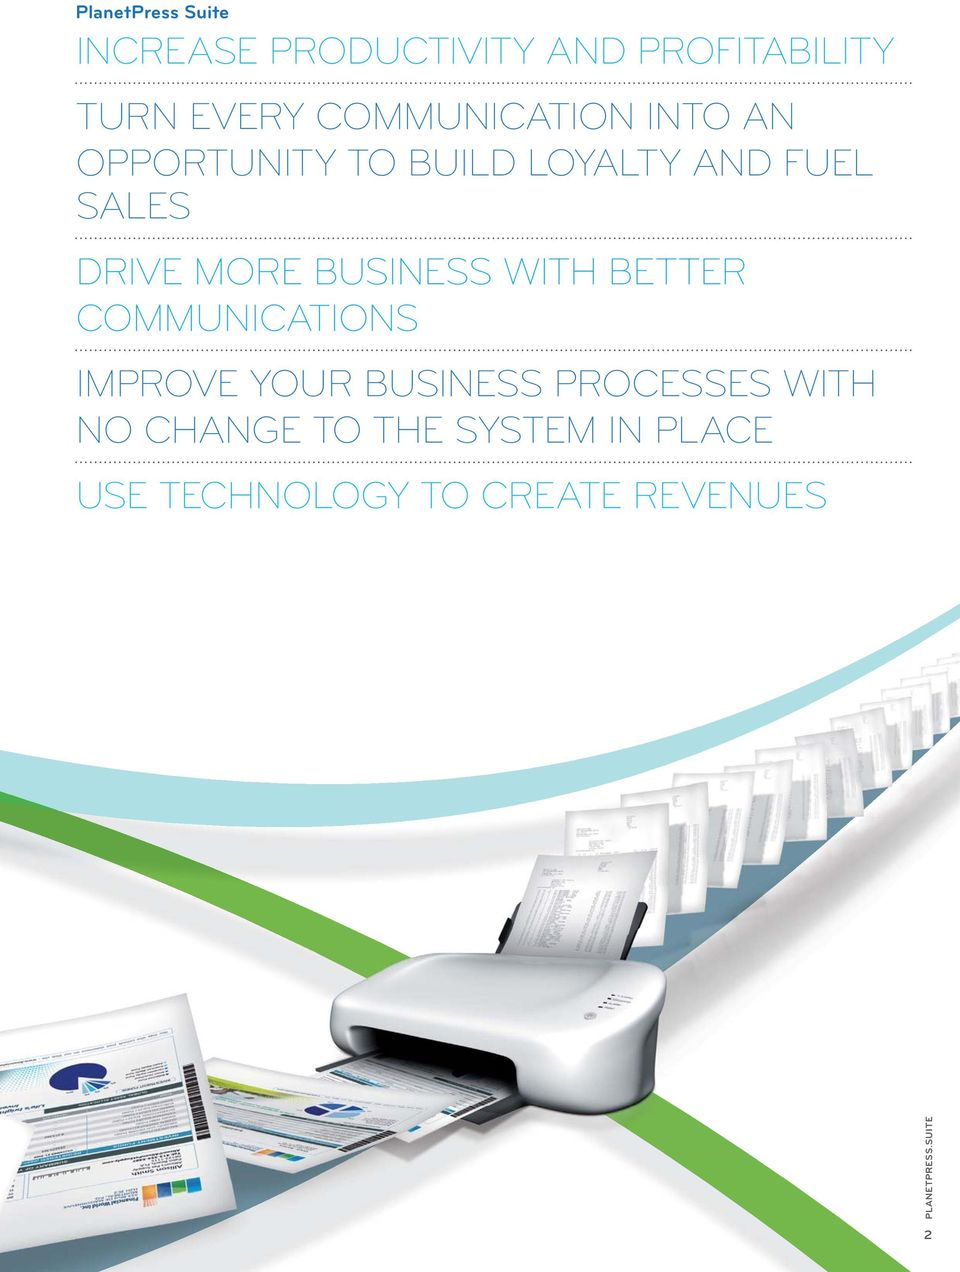 BUSINESS WITH BETTER COMMUNICATIONS IMPROVE YOUR BUSINESS PROCESSES WITH NO